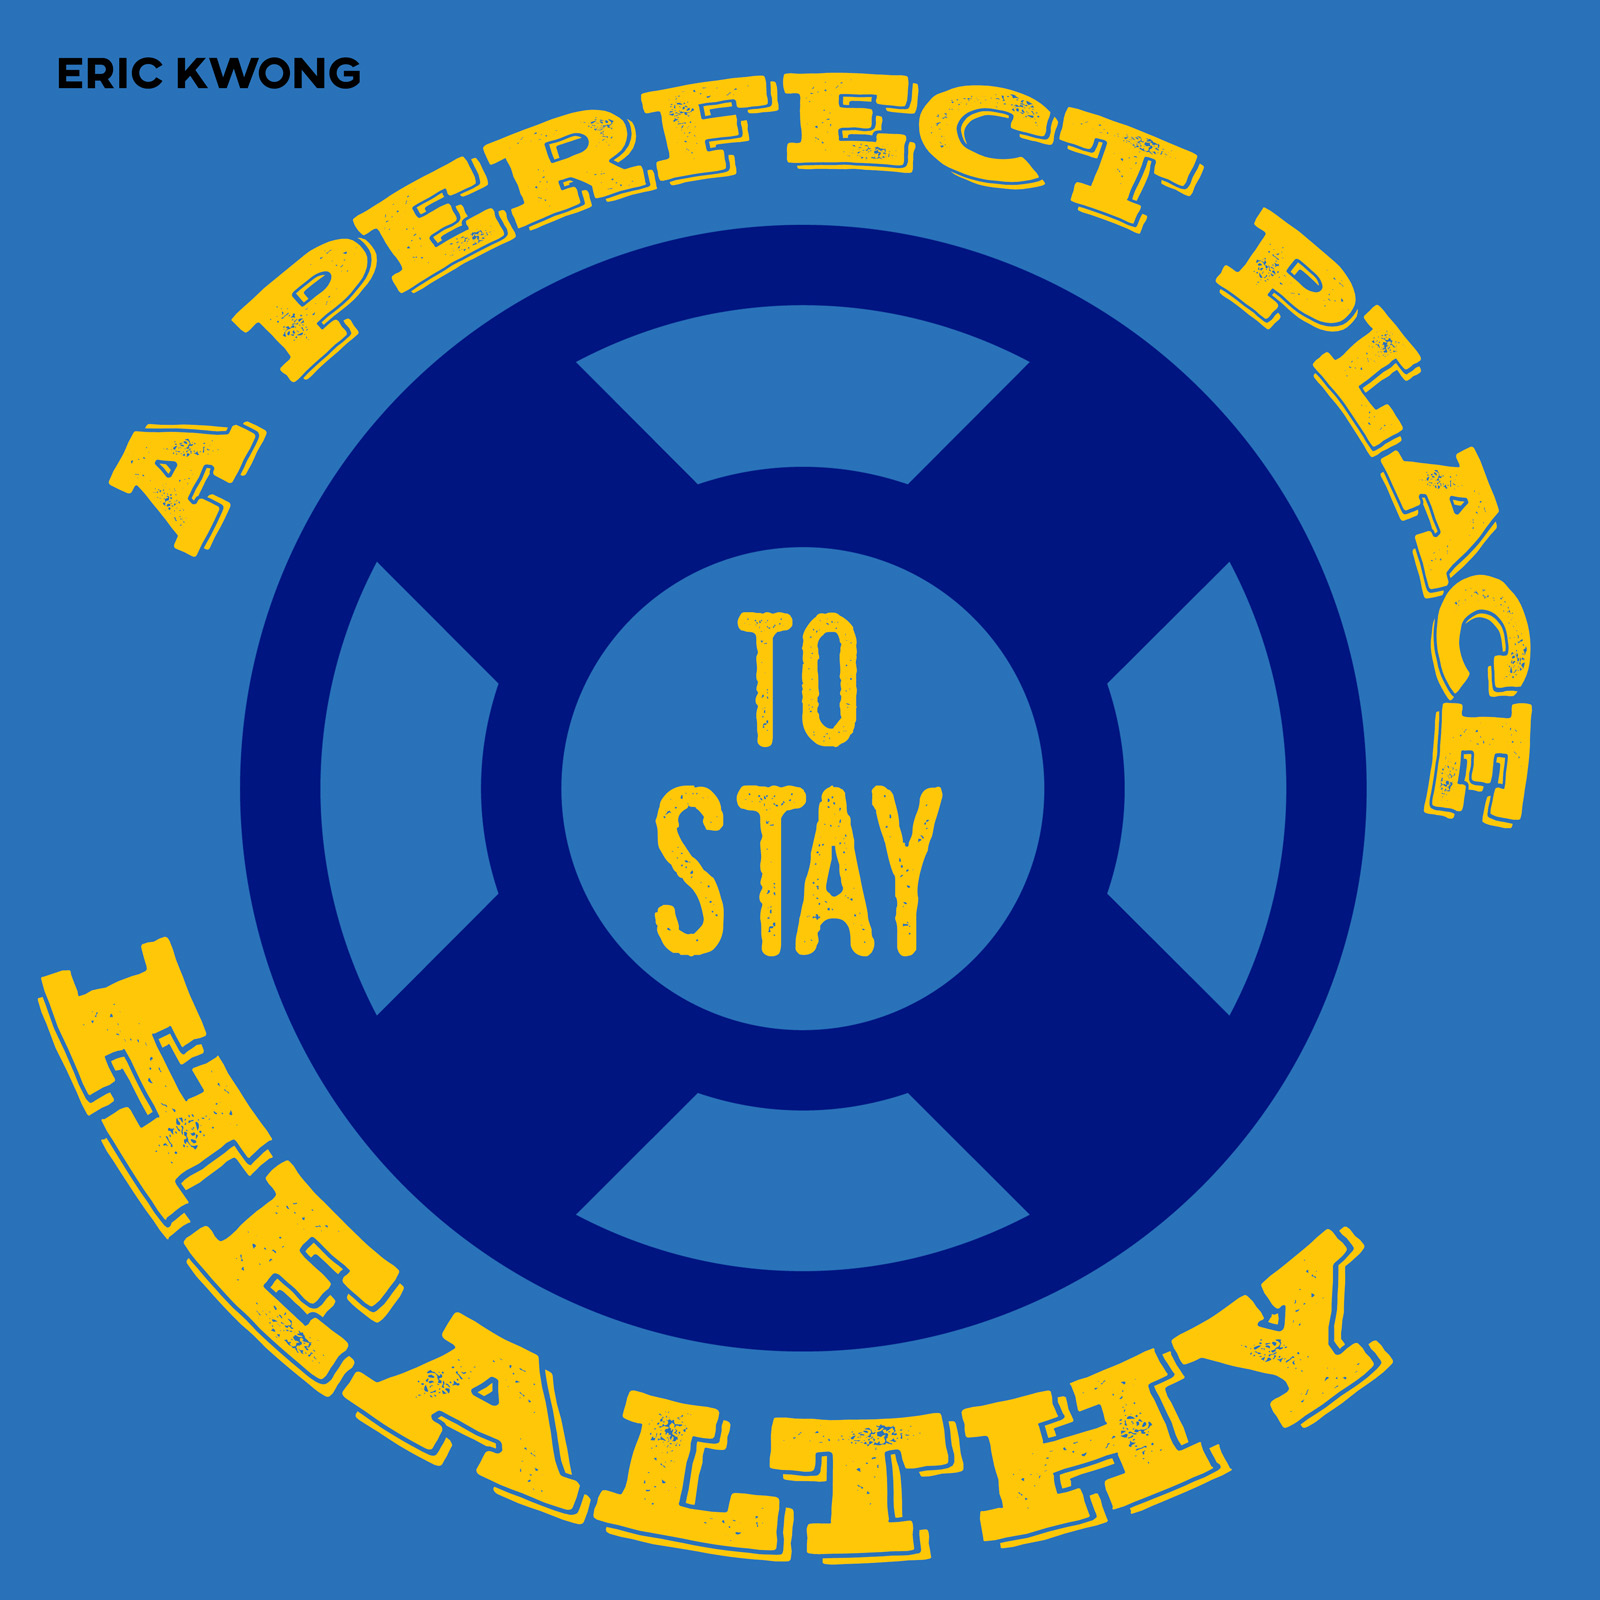 A perfect place to stay healthy